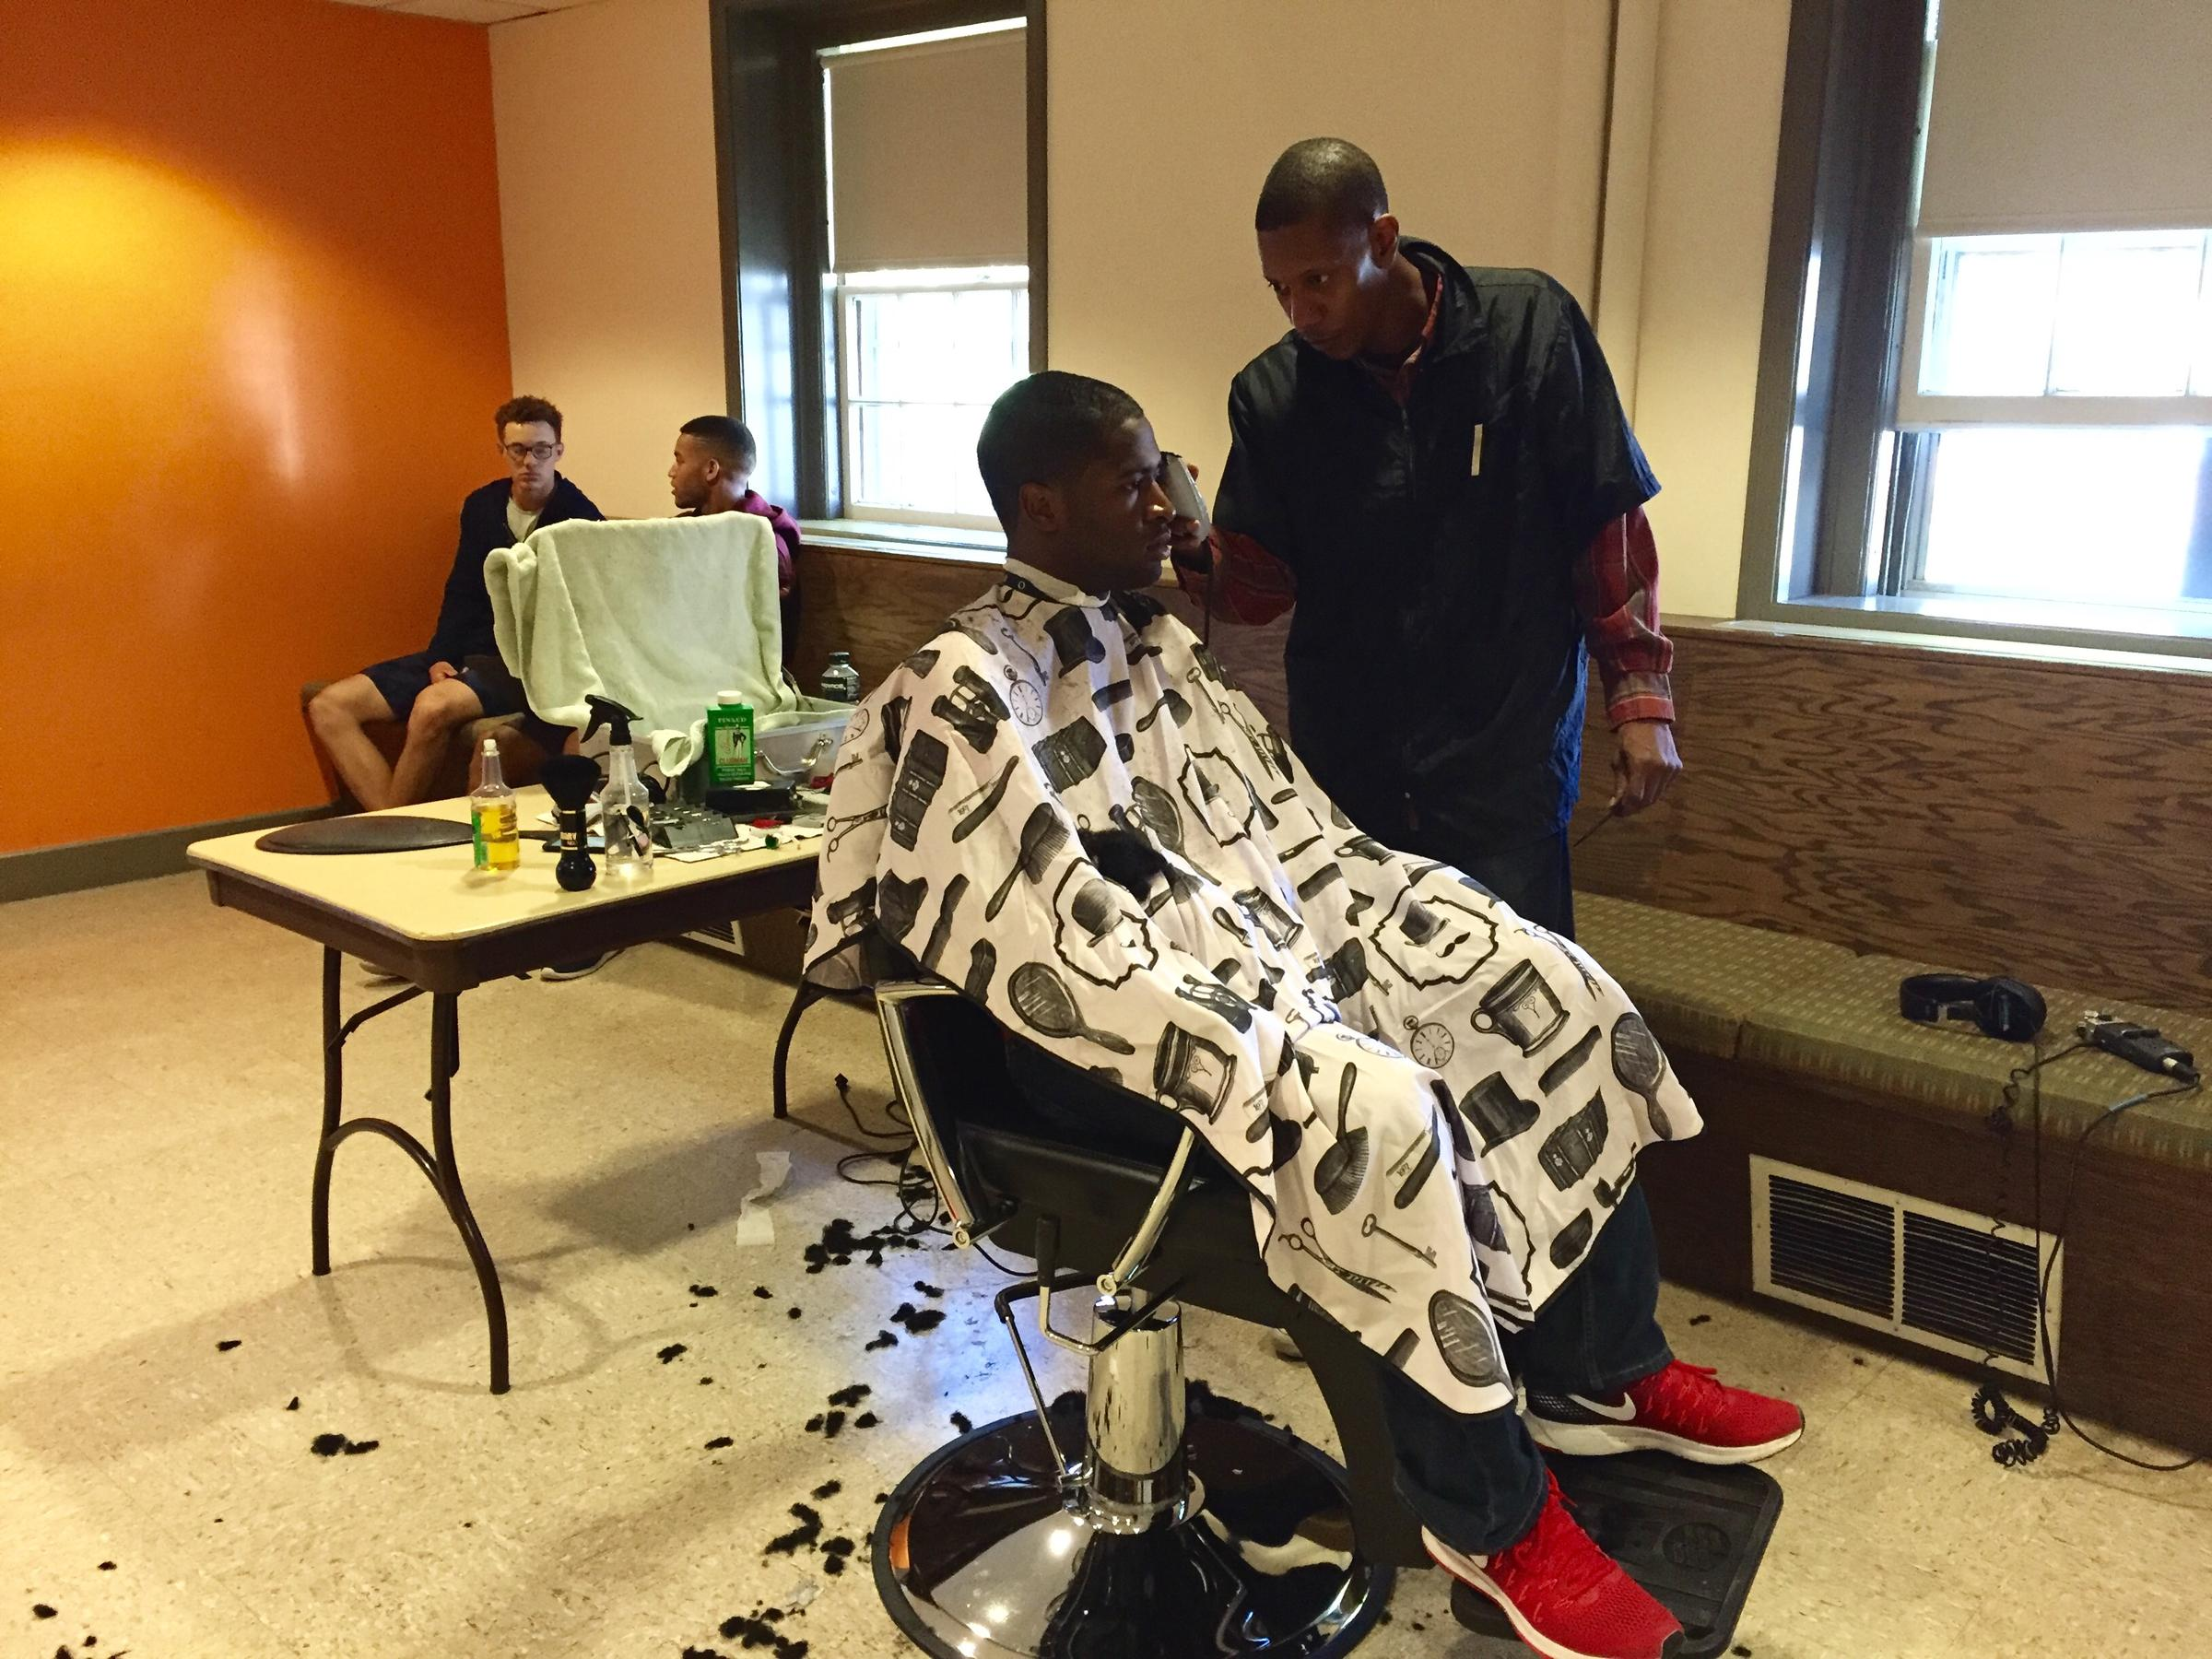 With Limited Options For Black Hair Care In The Upper Valley One